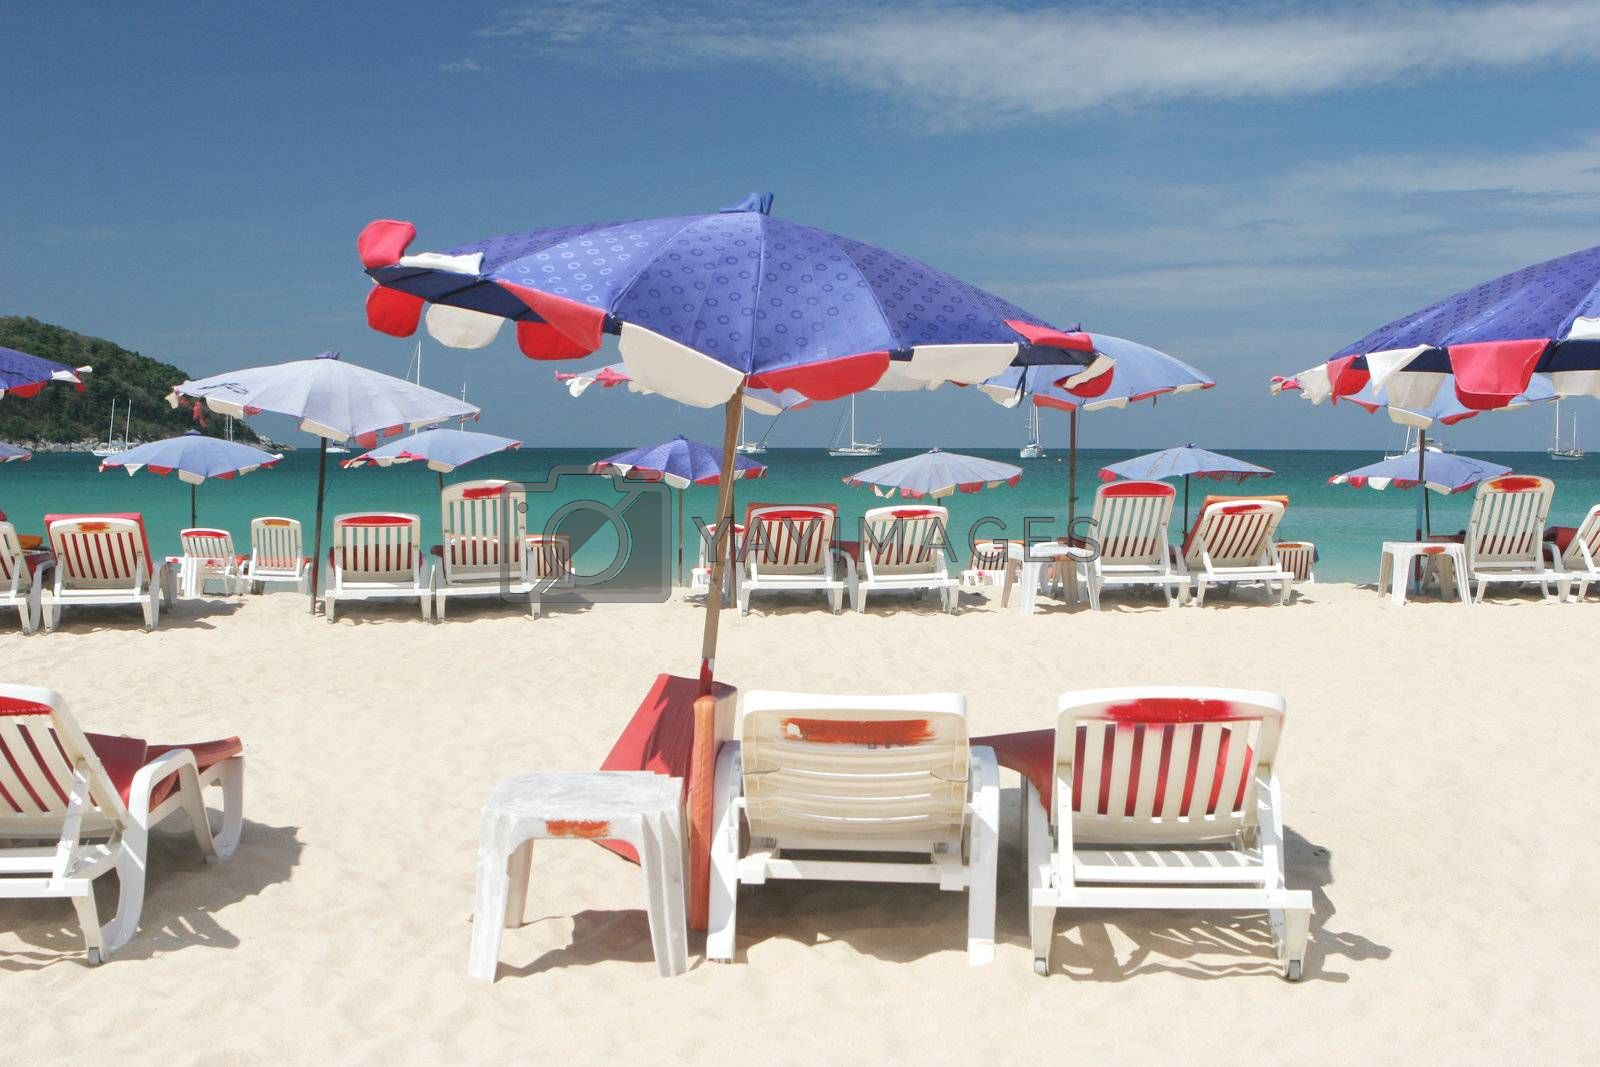 Beach chairs and umbrellas. by ginaellen